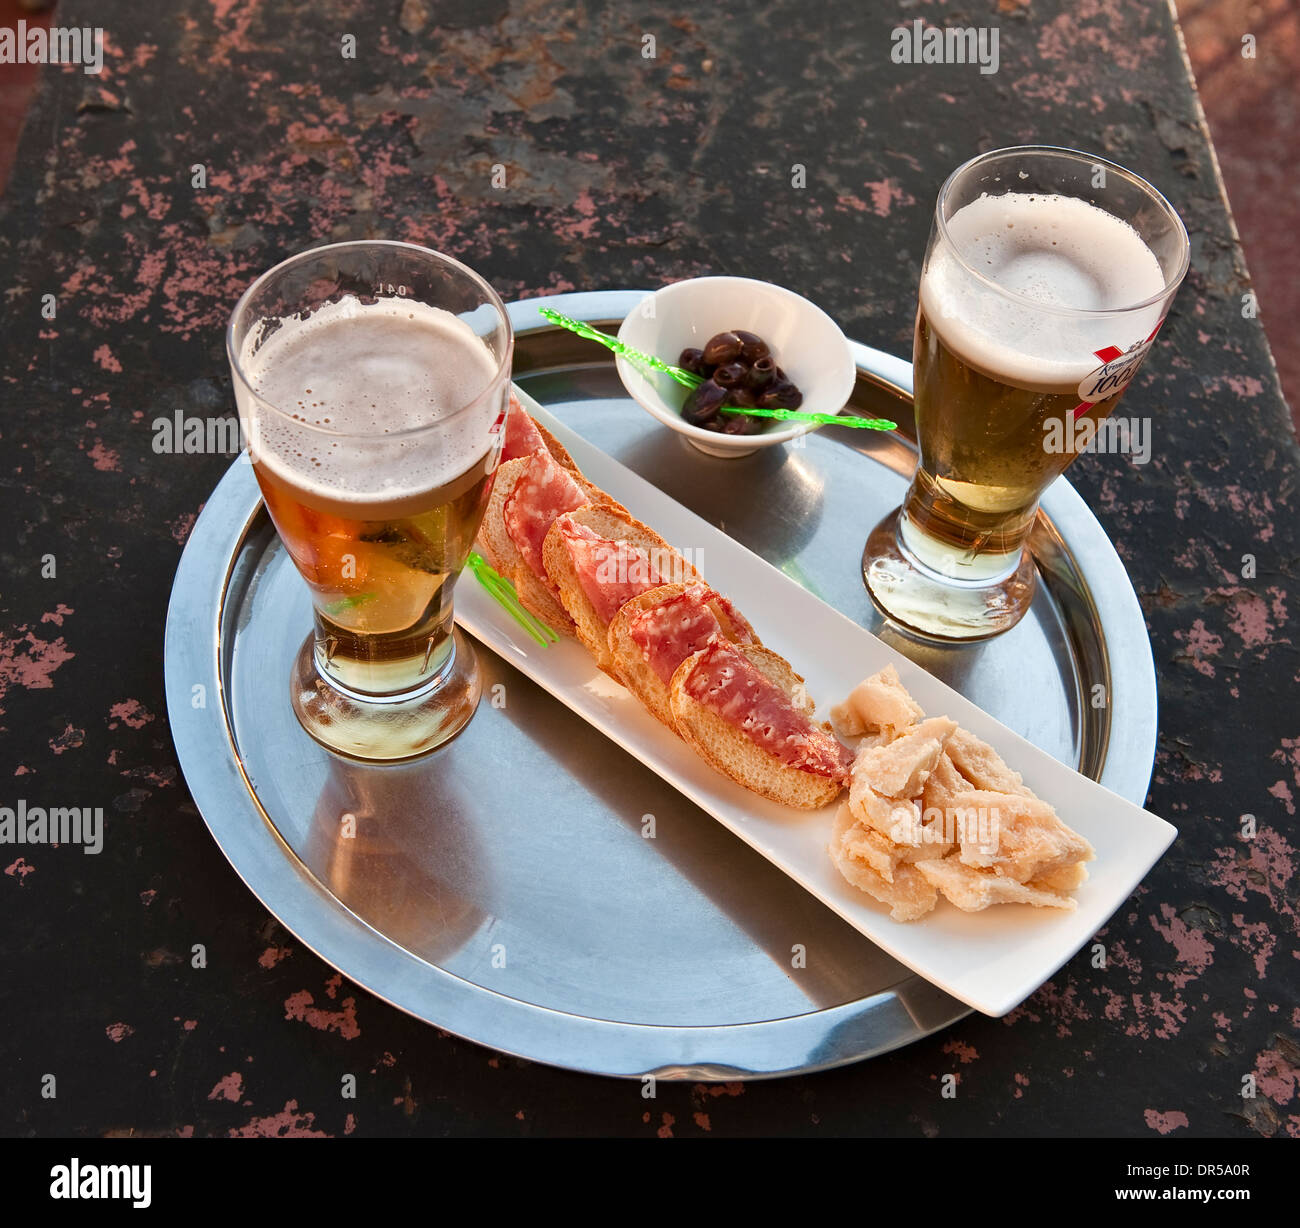 Beer, salami, bread and olives - a light snack at the end of the day on the terrace of a hotel in Italy Stock Photo